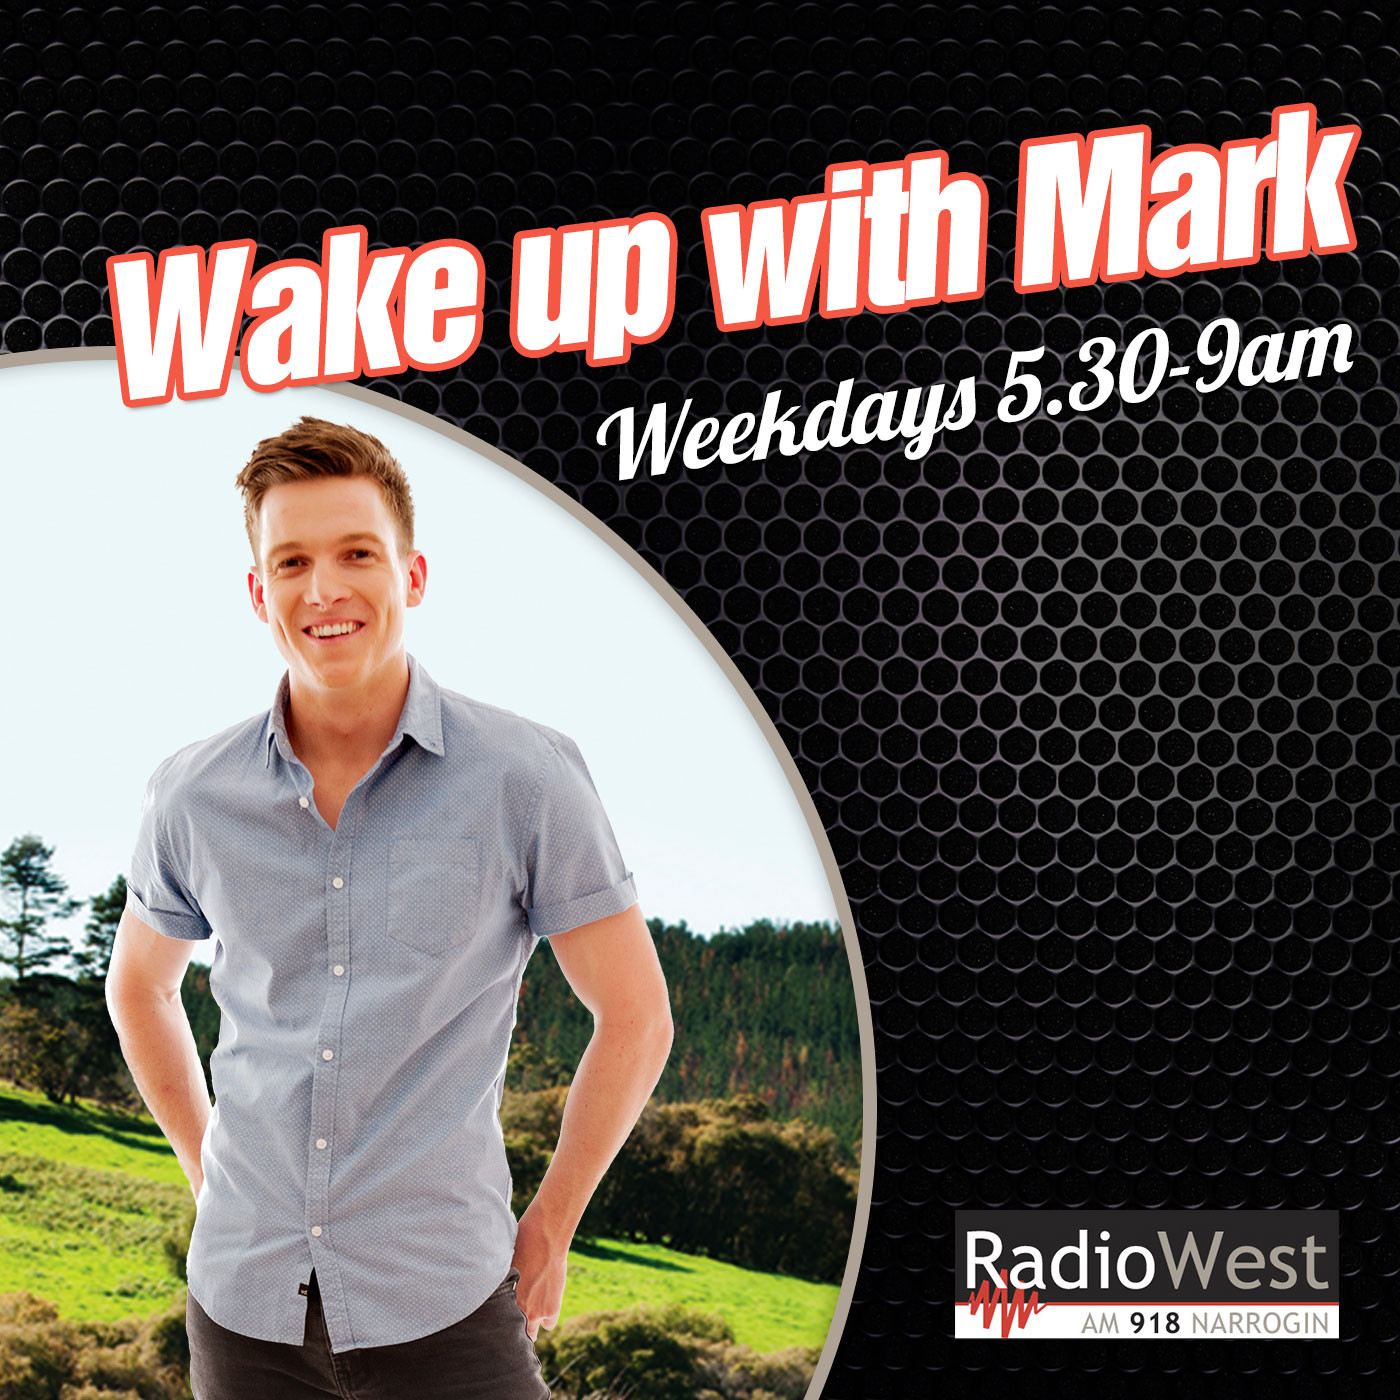 Wake up with Mark